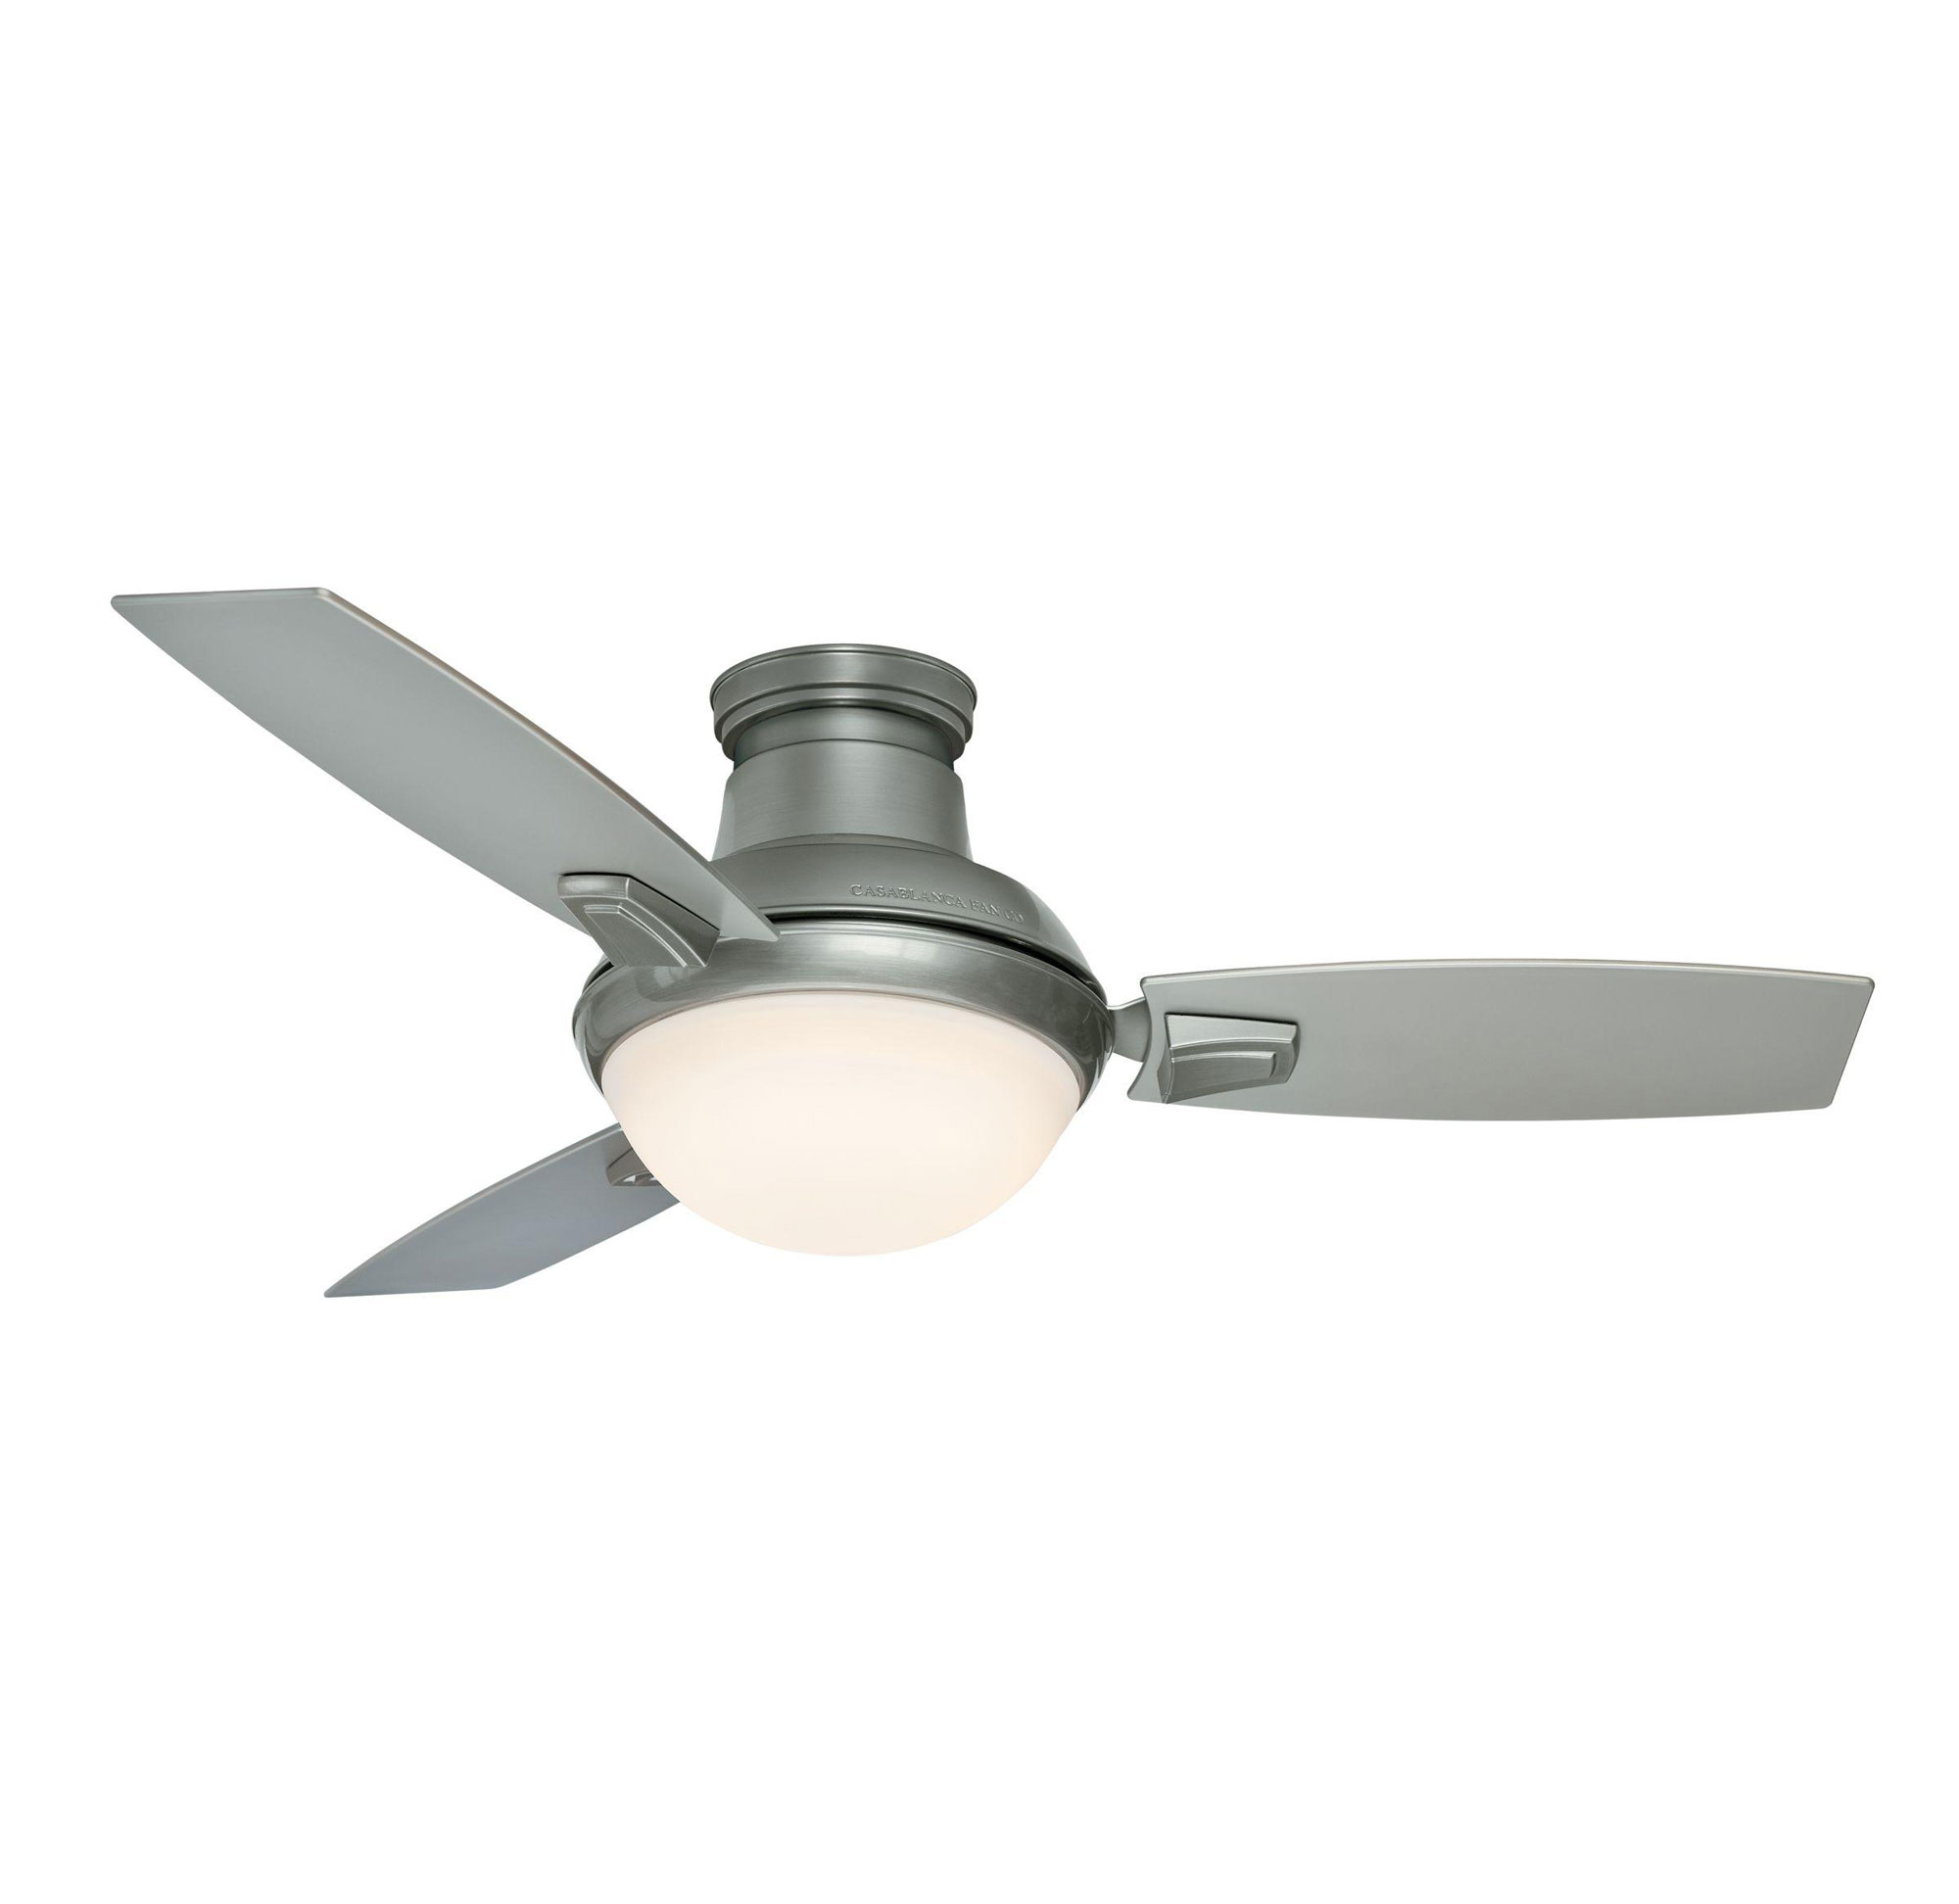 44 Inch LED Ceiling Fan by Casablanca Fan